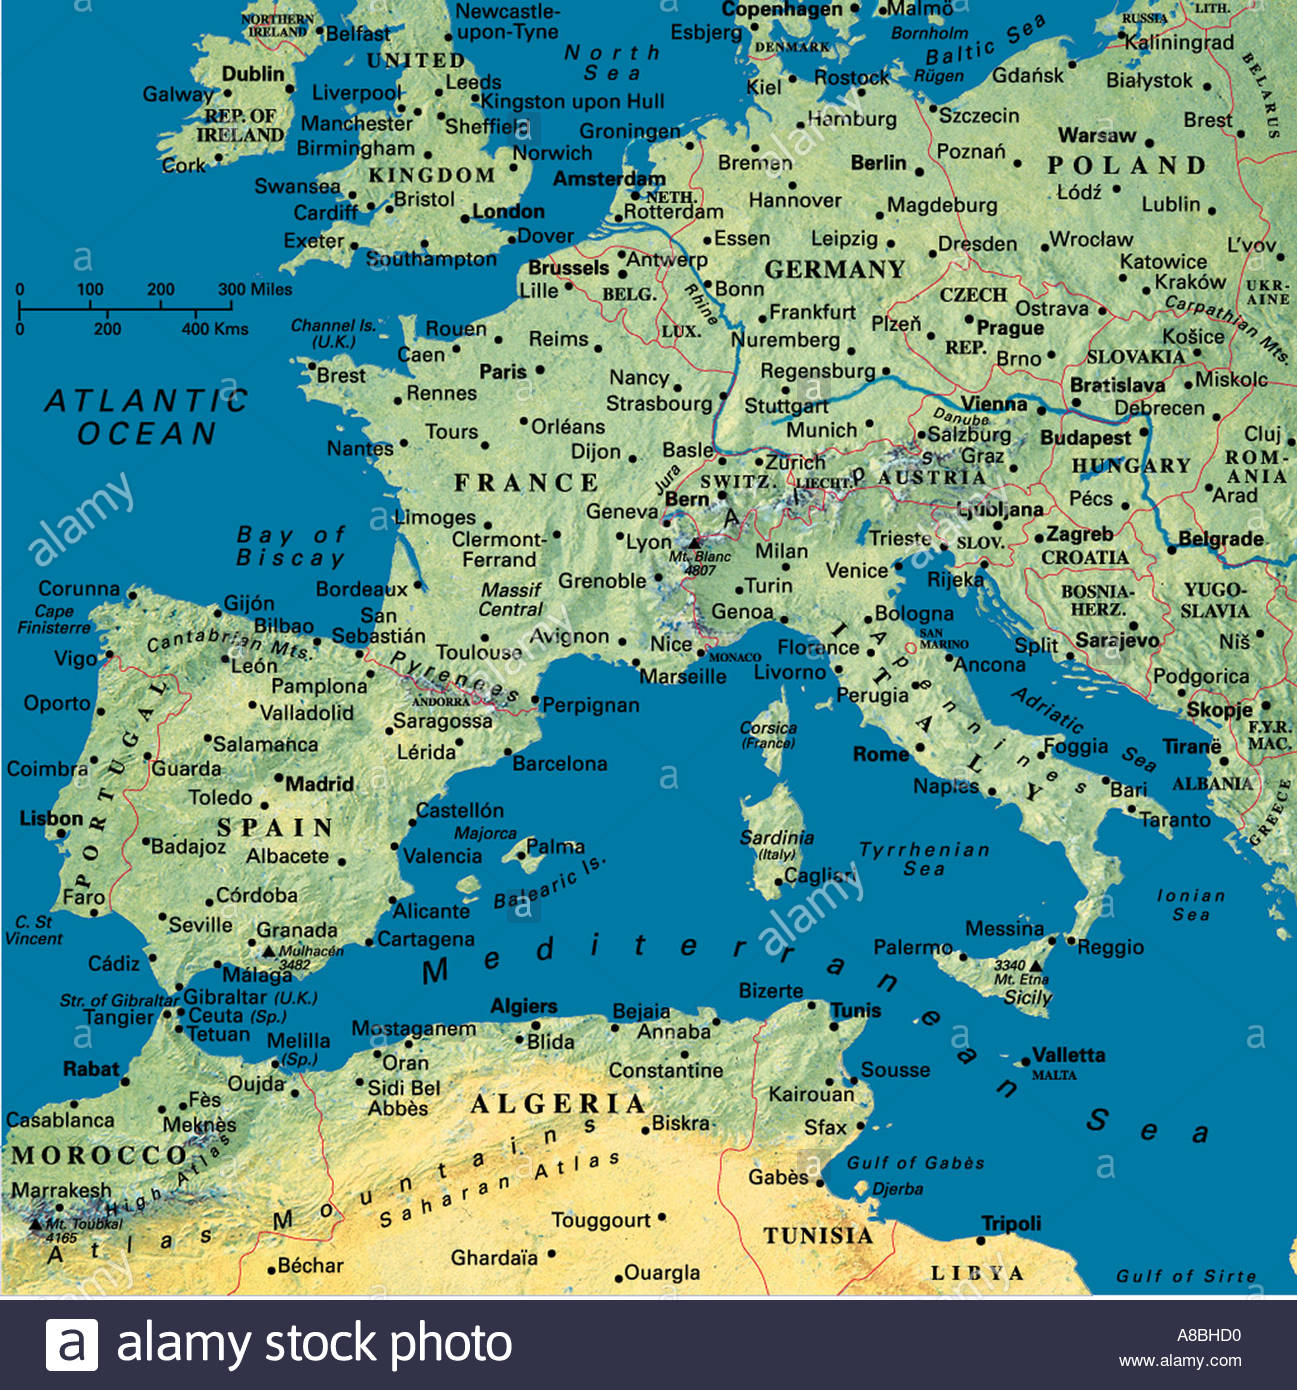 Map Maps Europe Algeria Tunesia North Africa Spain Portugal France - Map of france and spain